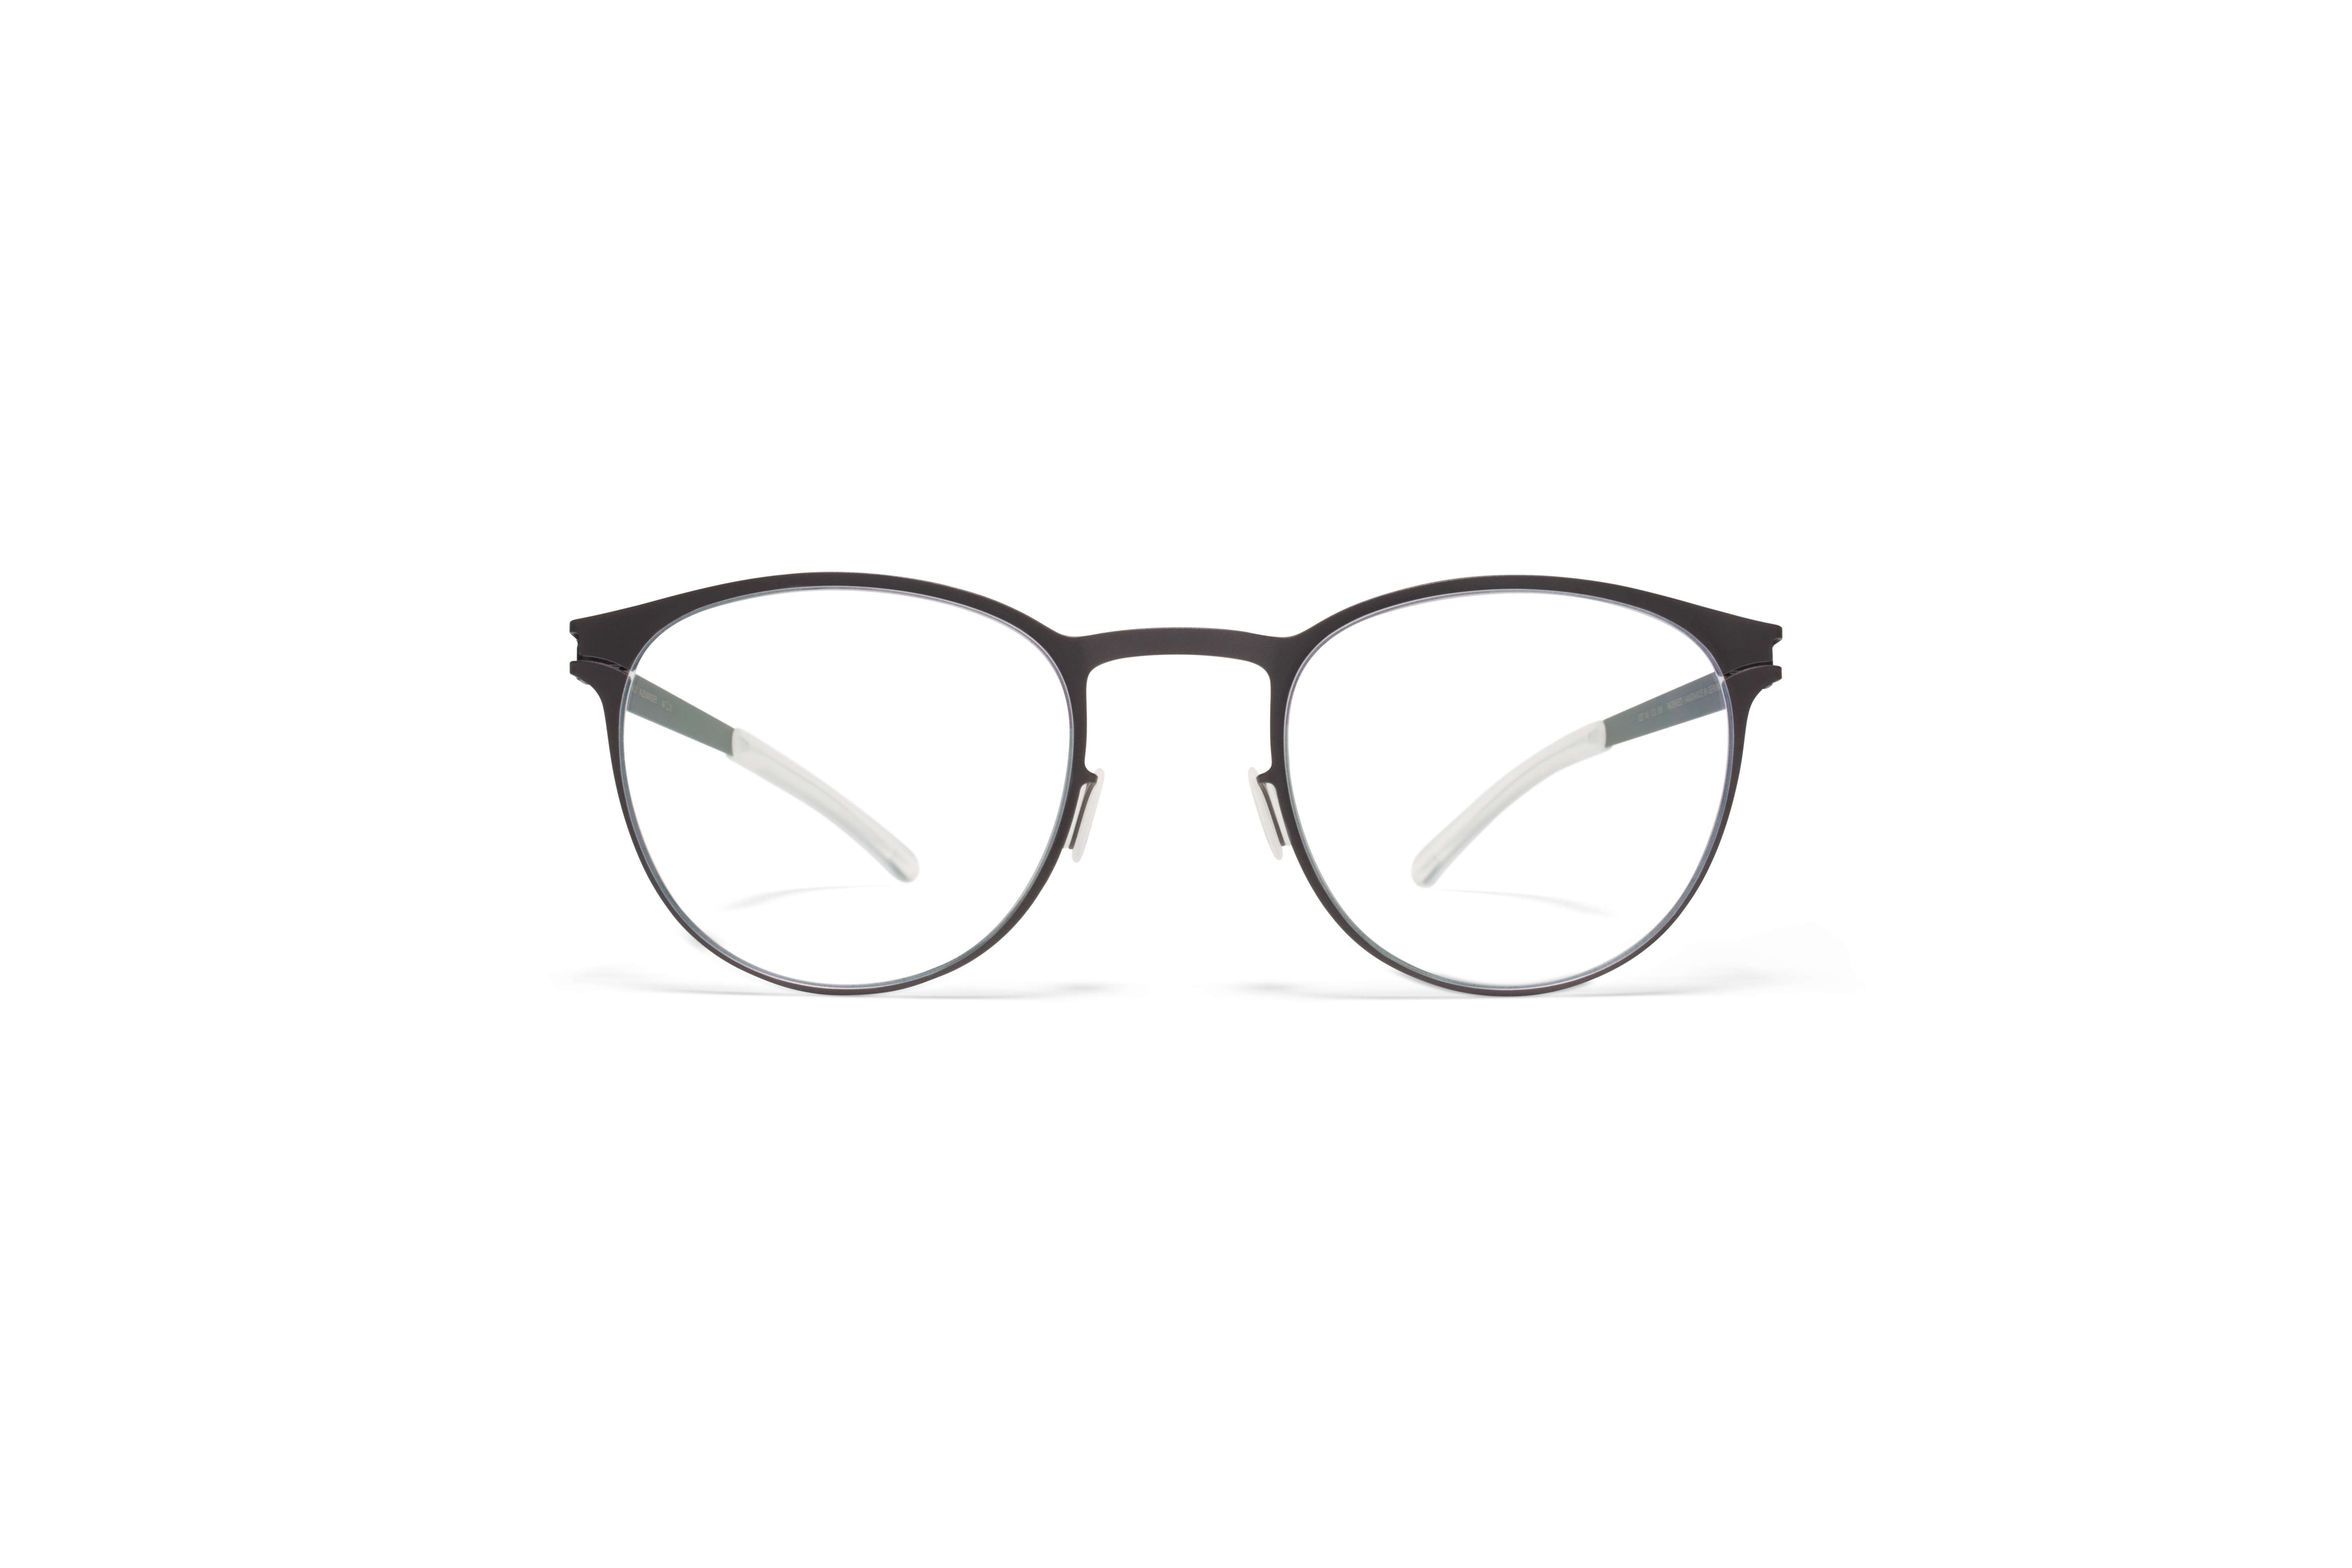 MYKITA No1 Rx Alexander Blackberry Clear P590ae0bce839e